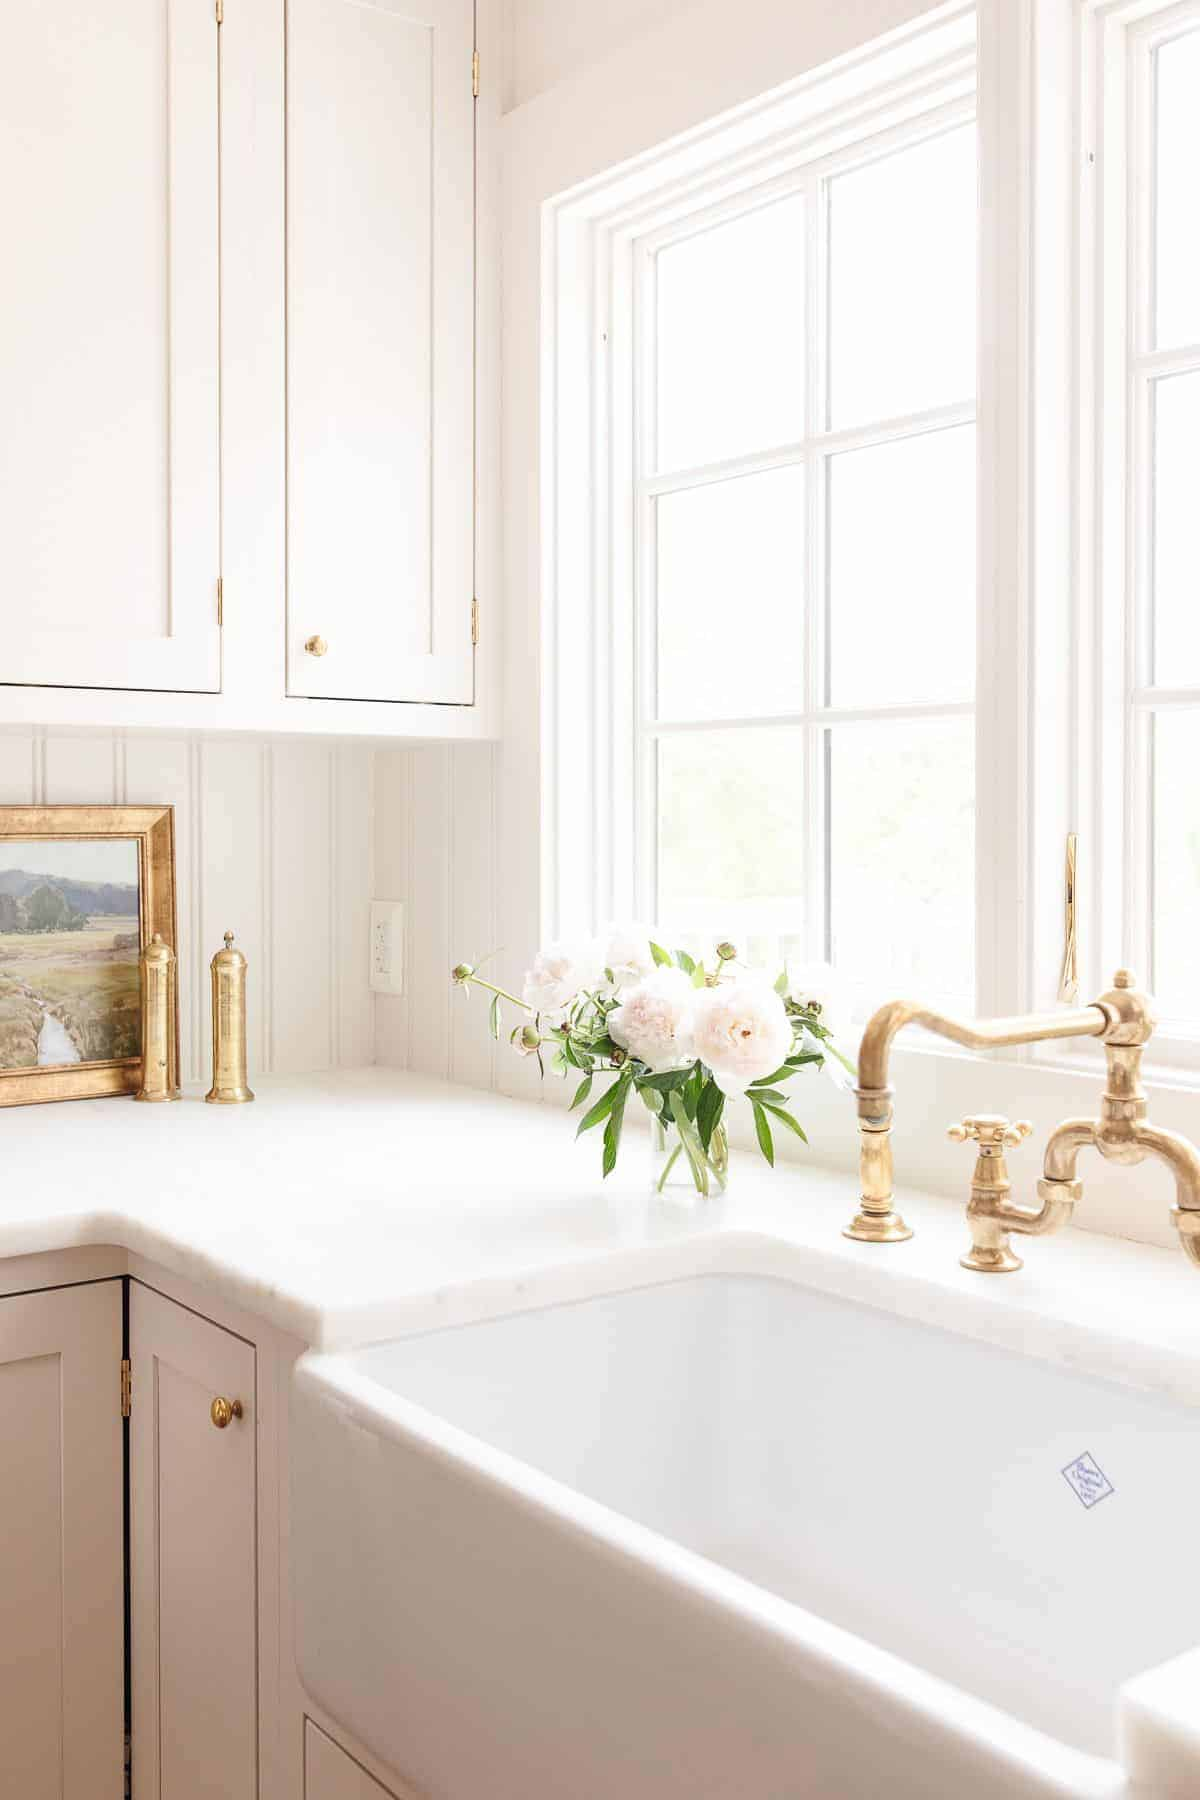 A cream-colored kitchen with a farm sink and custom cabinets.